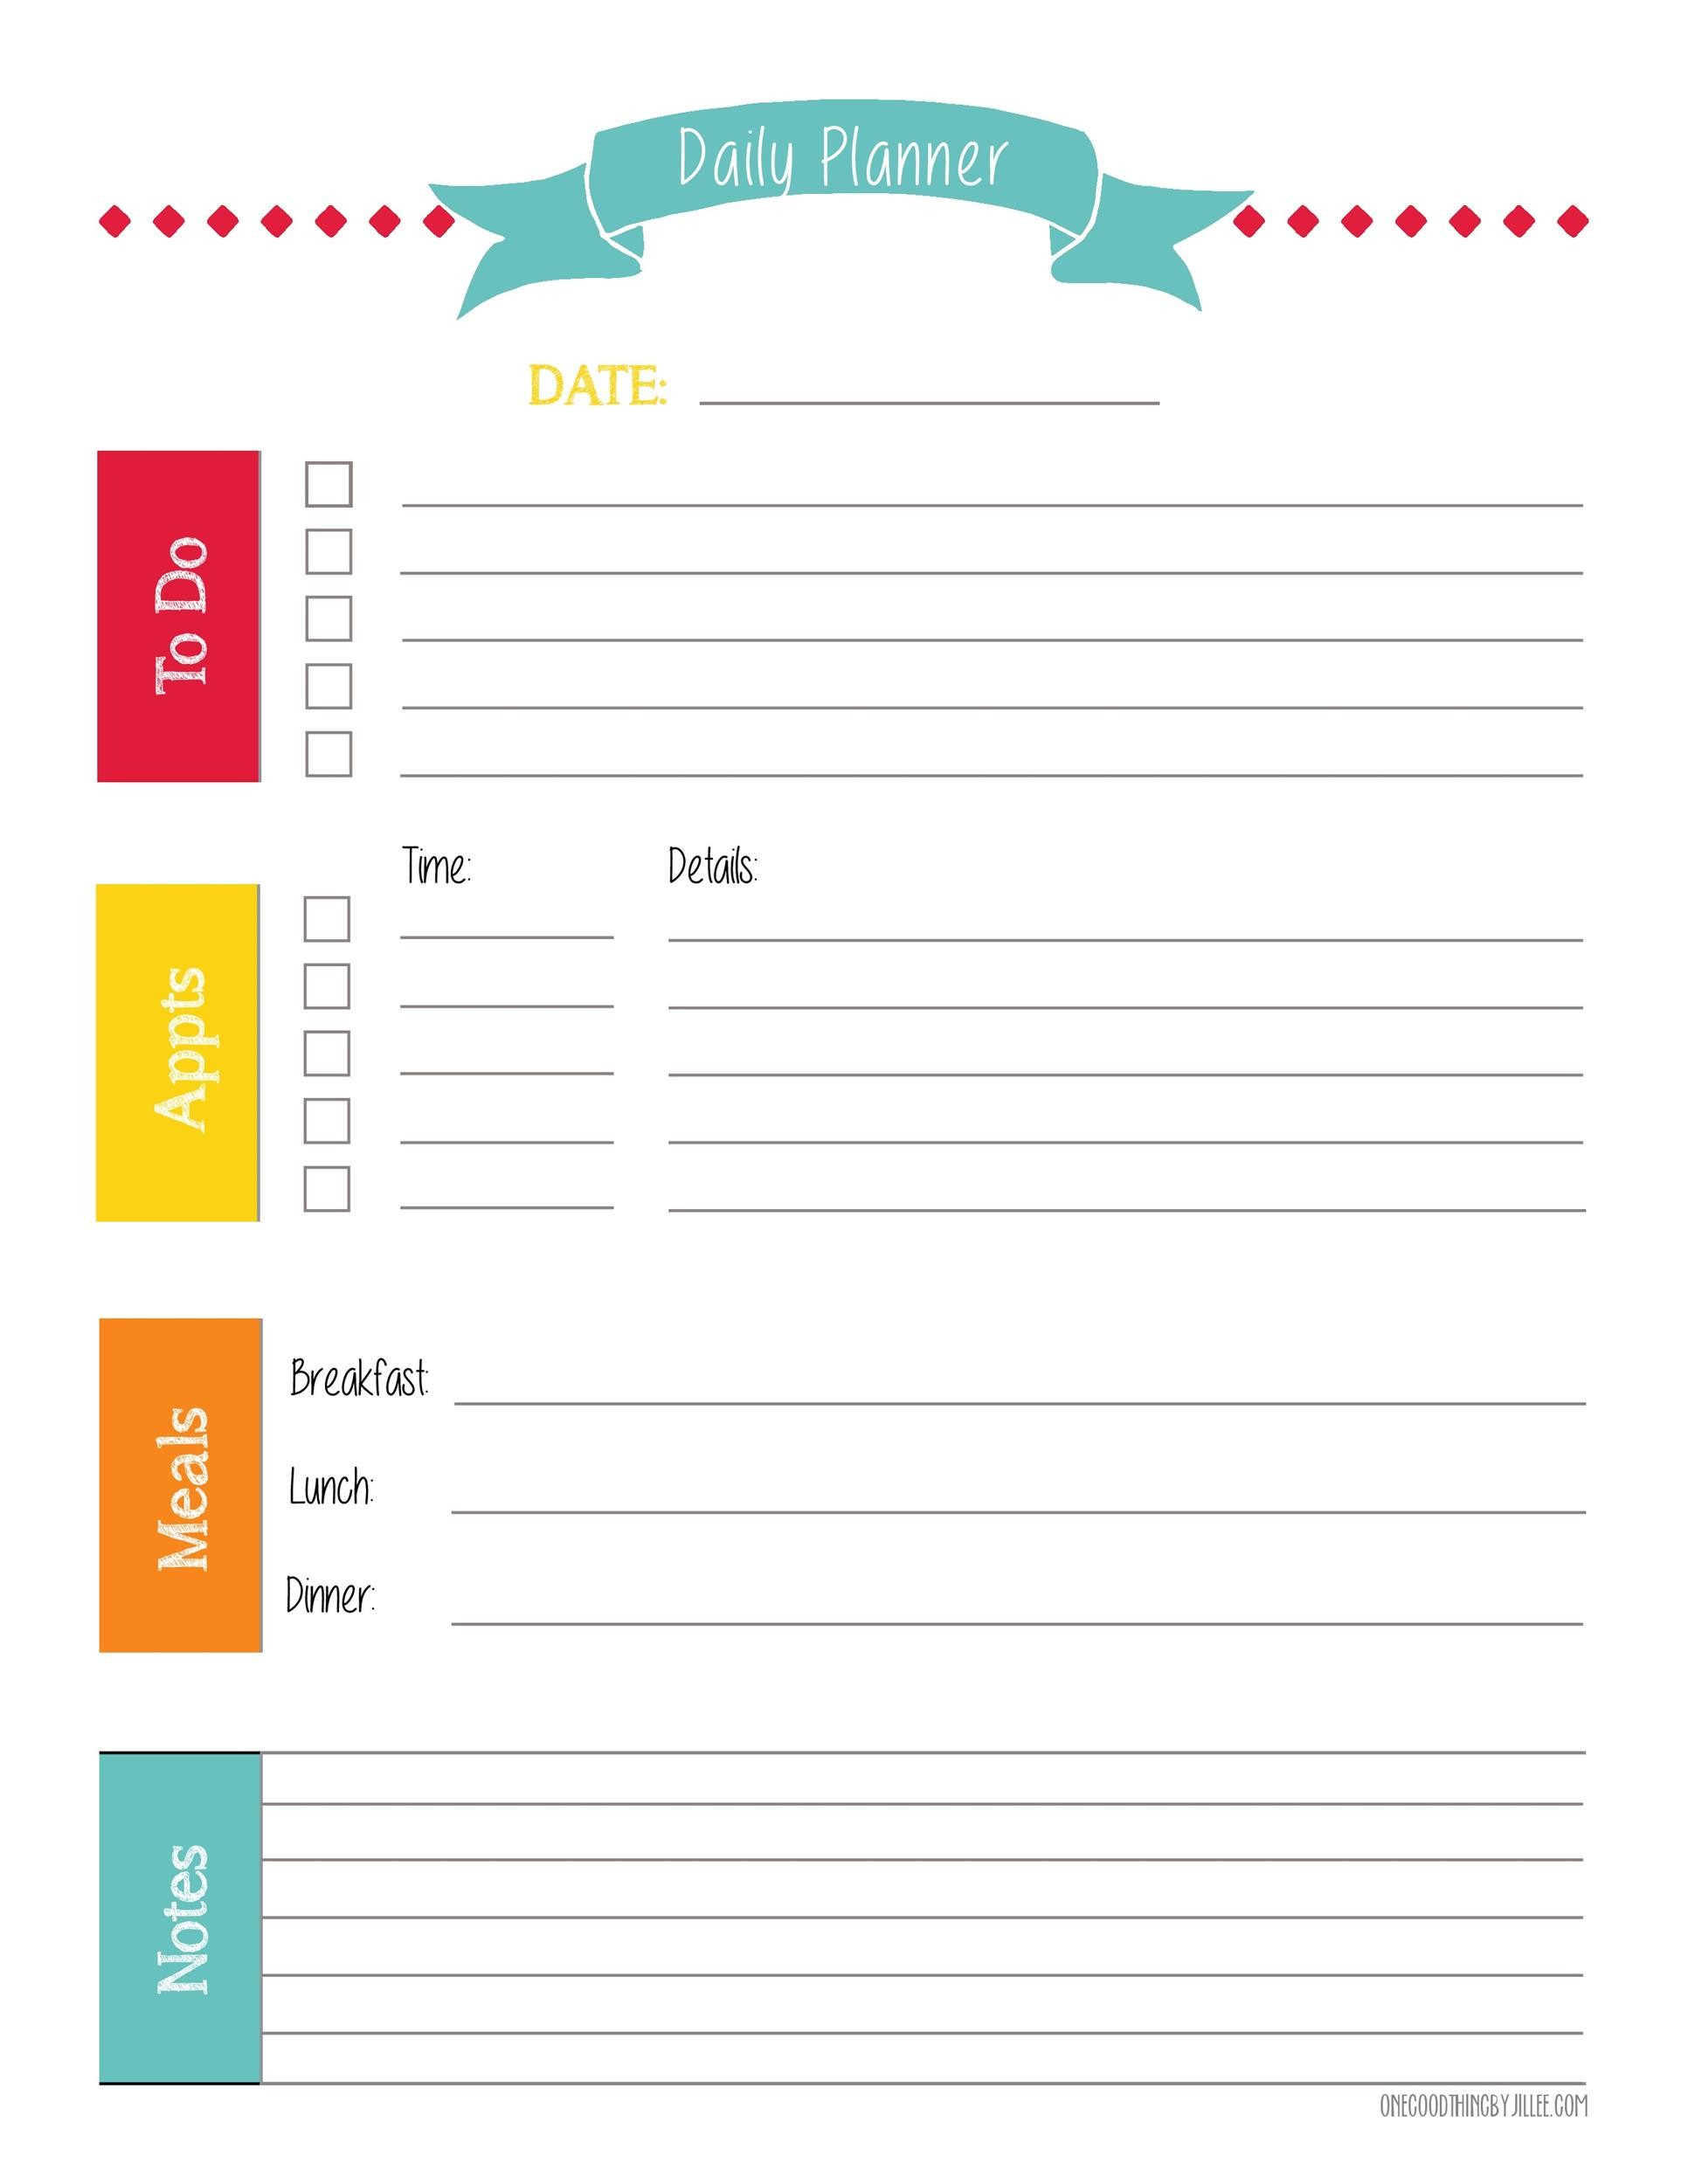 40 Printable Daily Planner Templates FREE Template Lab – Free Daily Calendar Template with Times